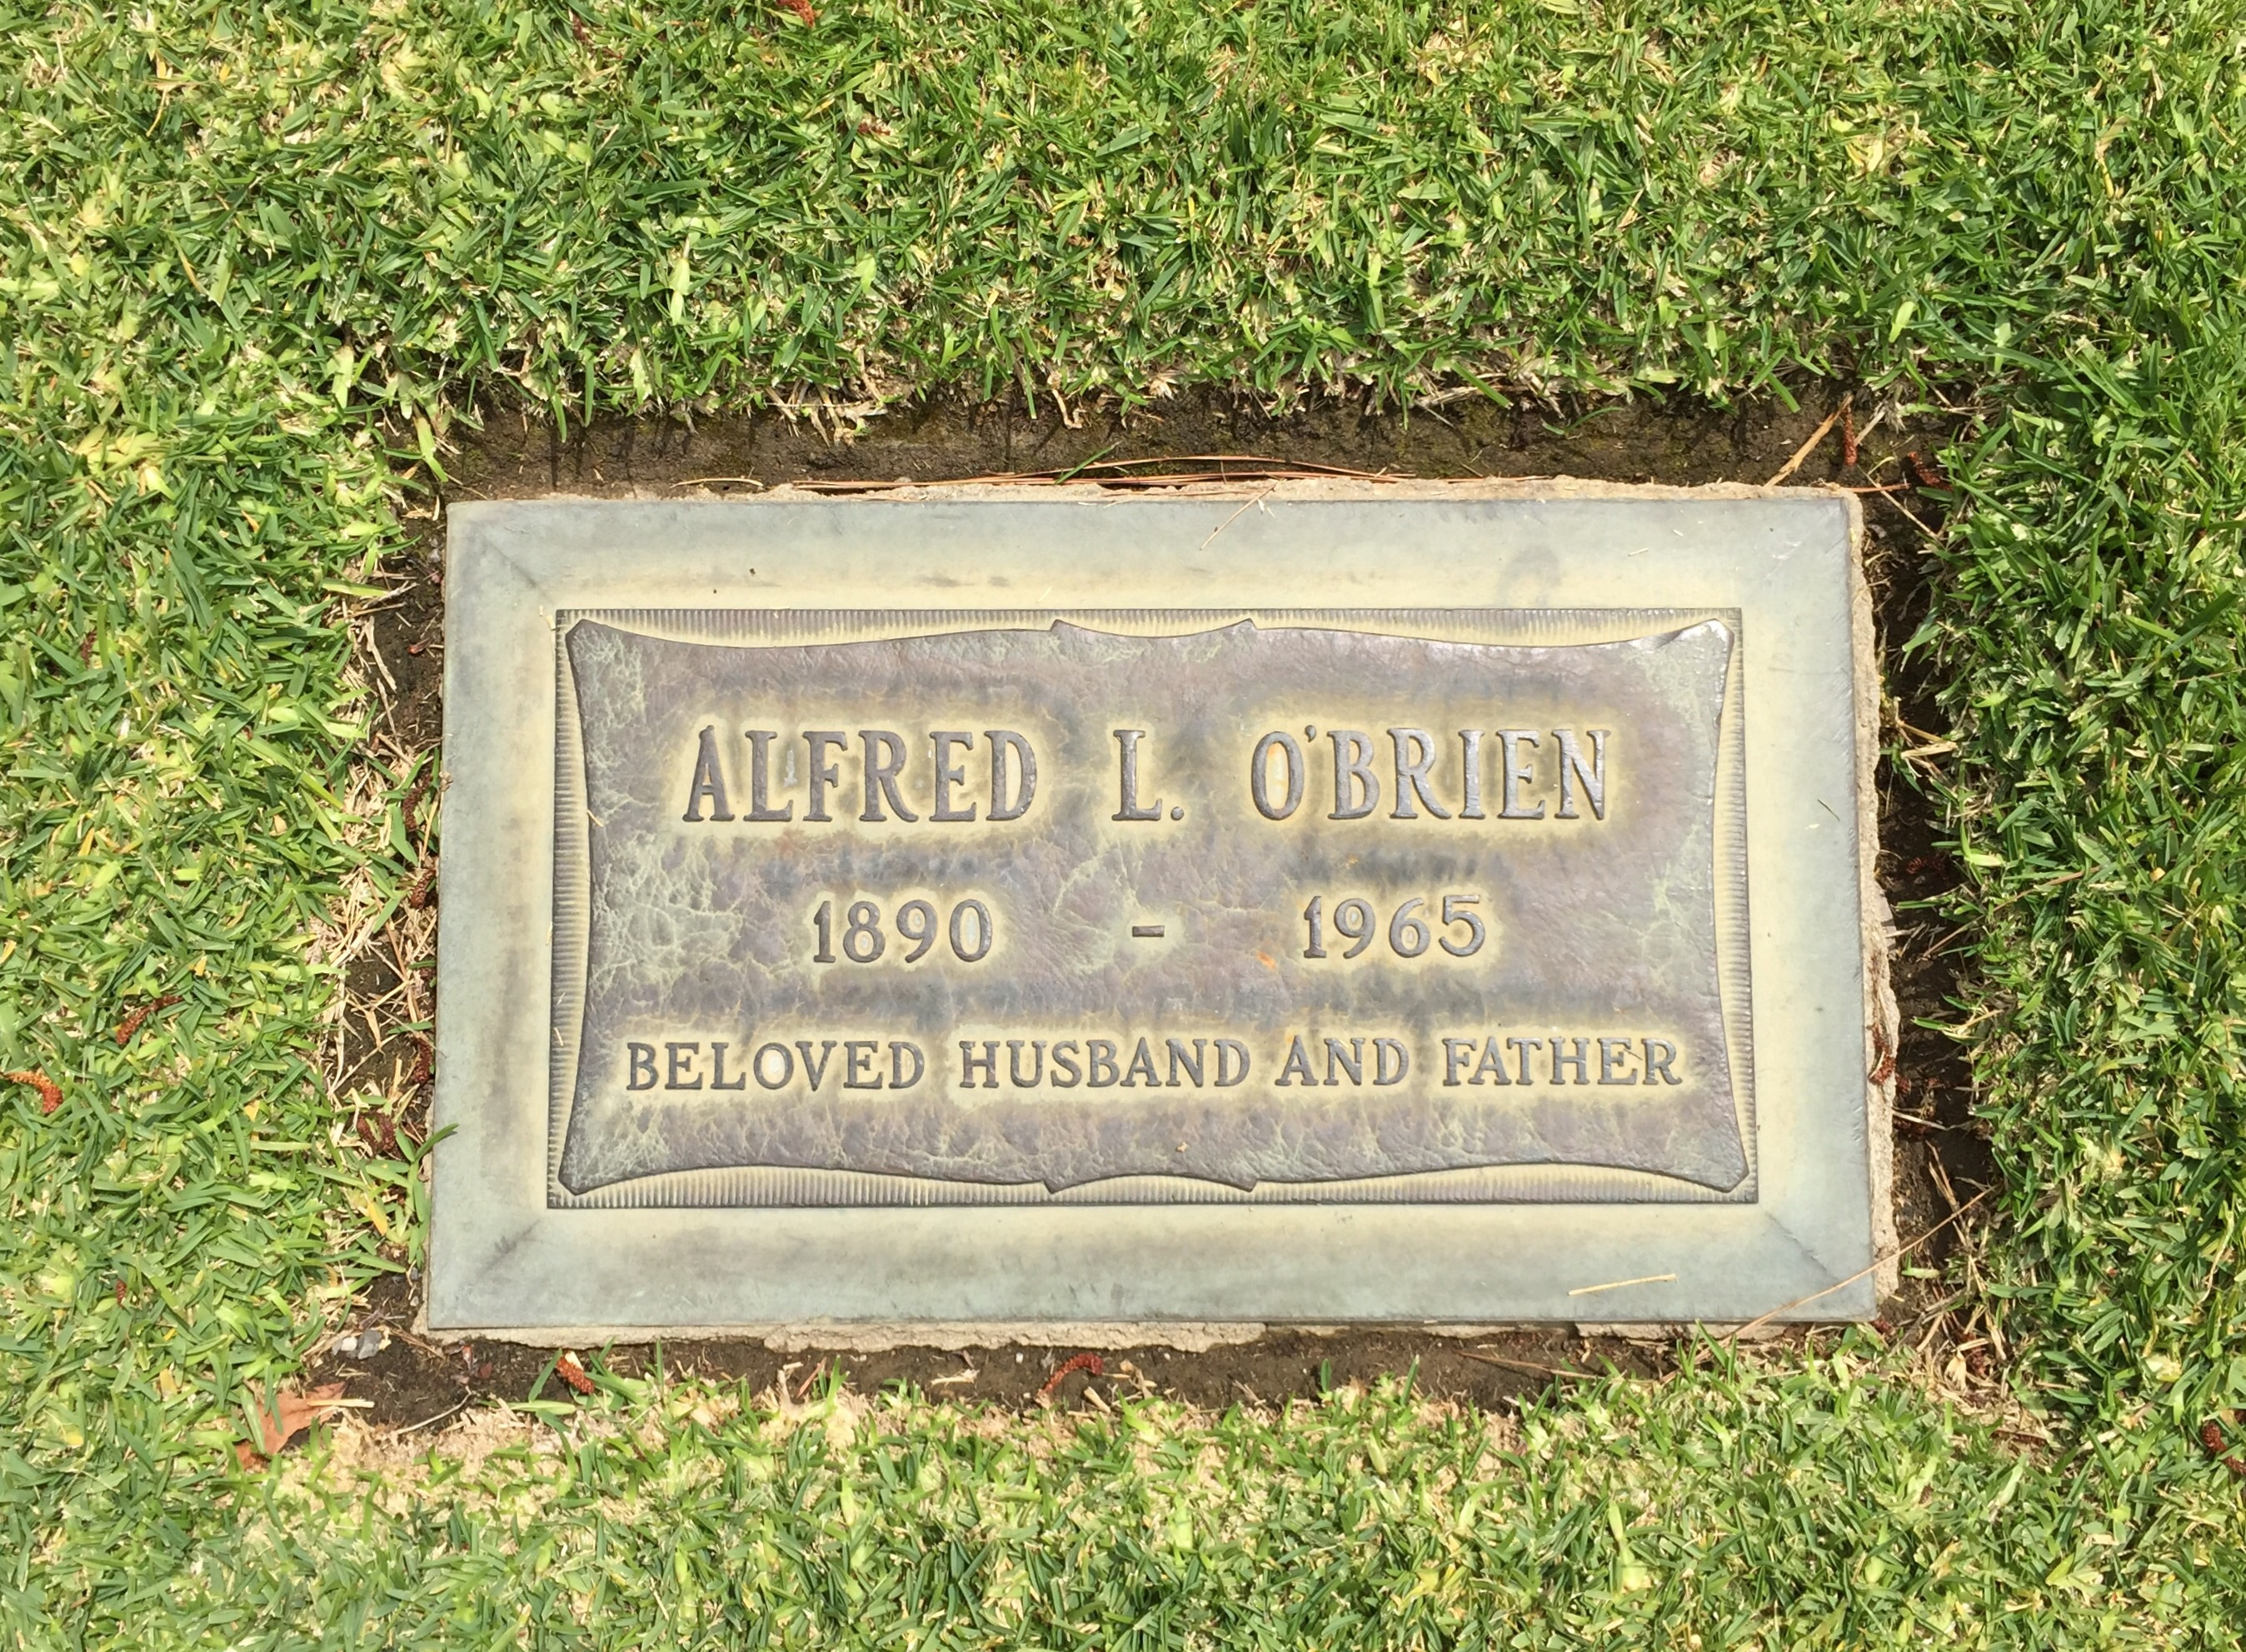 Alfred Laurence O'Brien